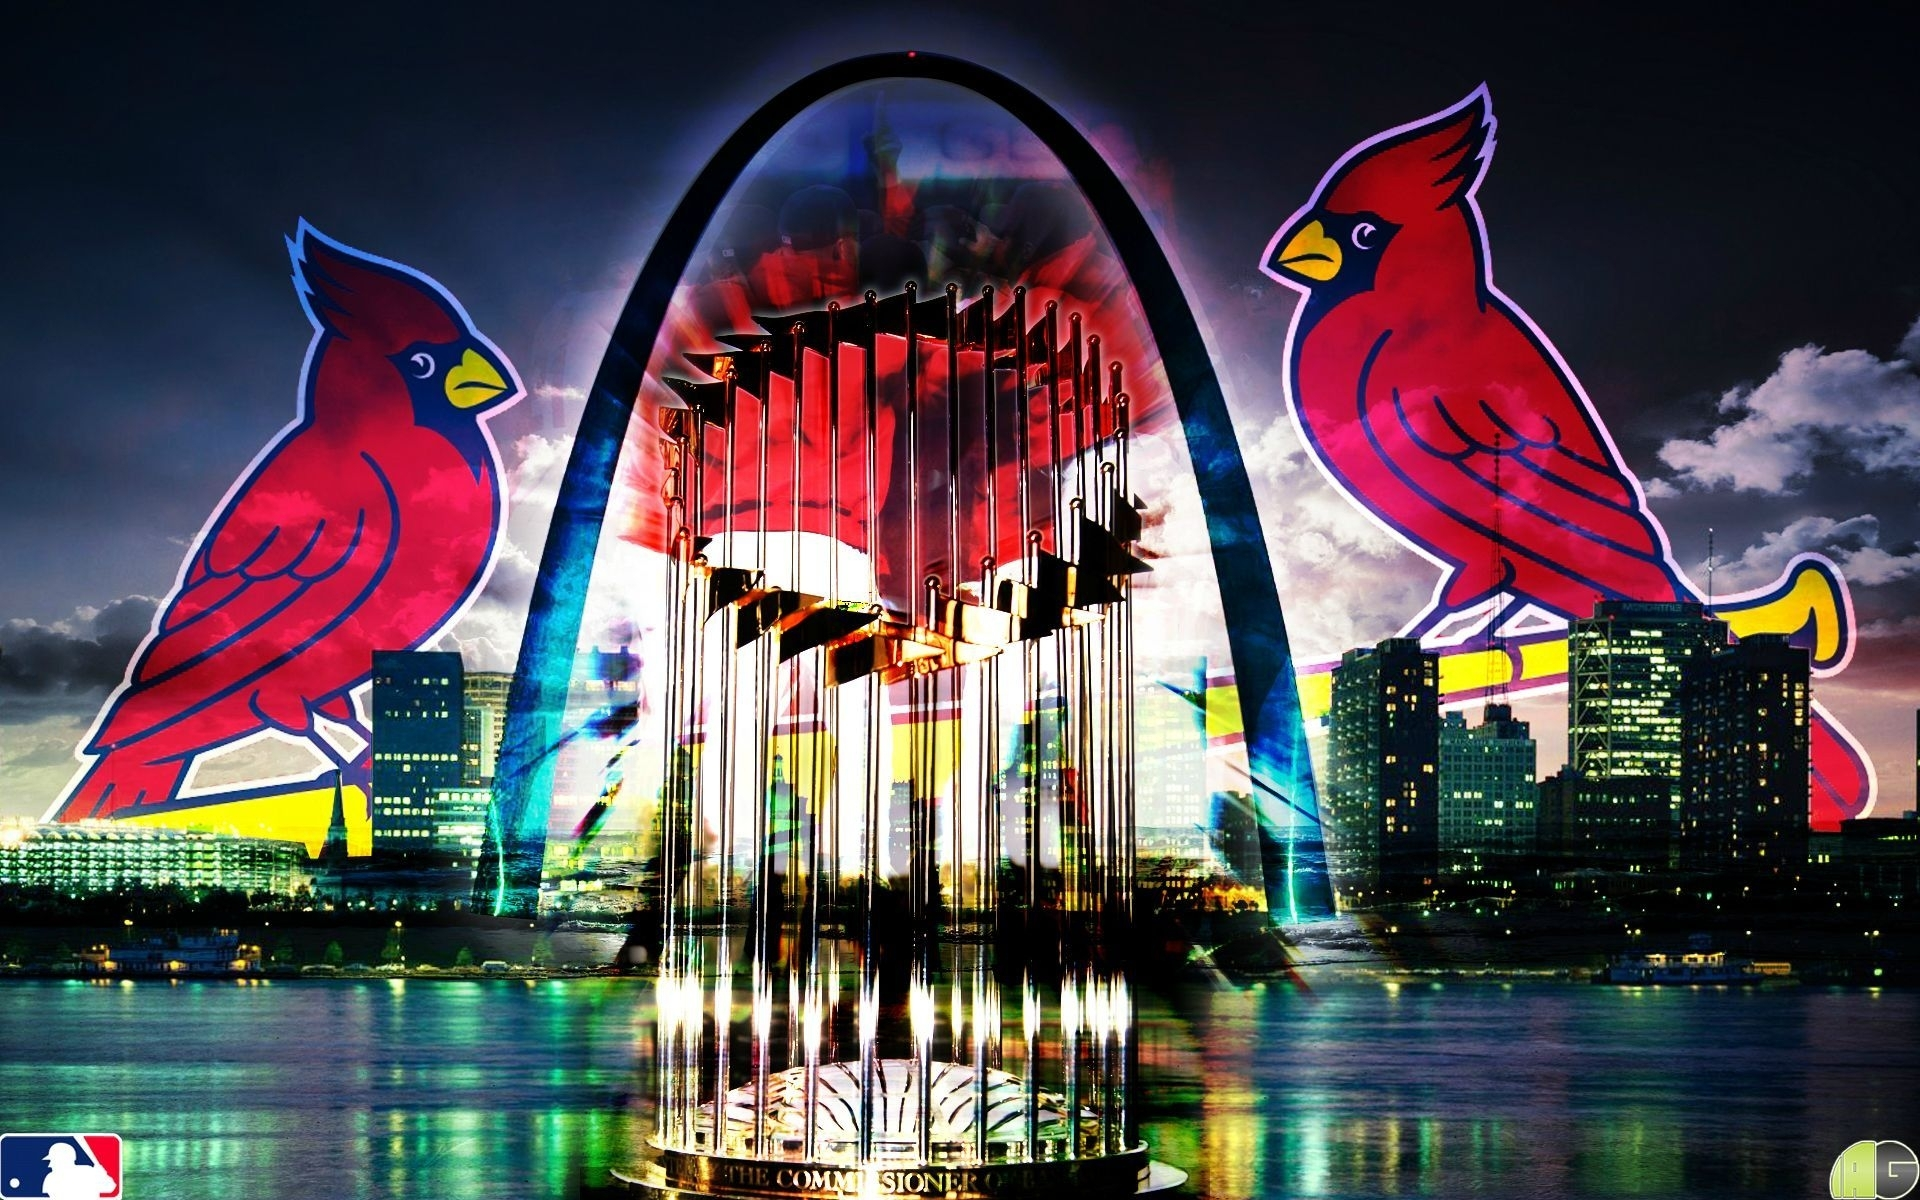 st louis cardinals wallpaper image. - media file | pixelstalk